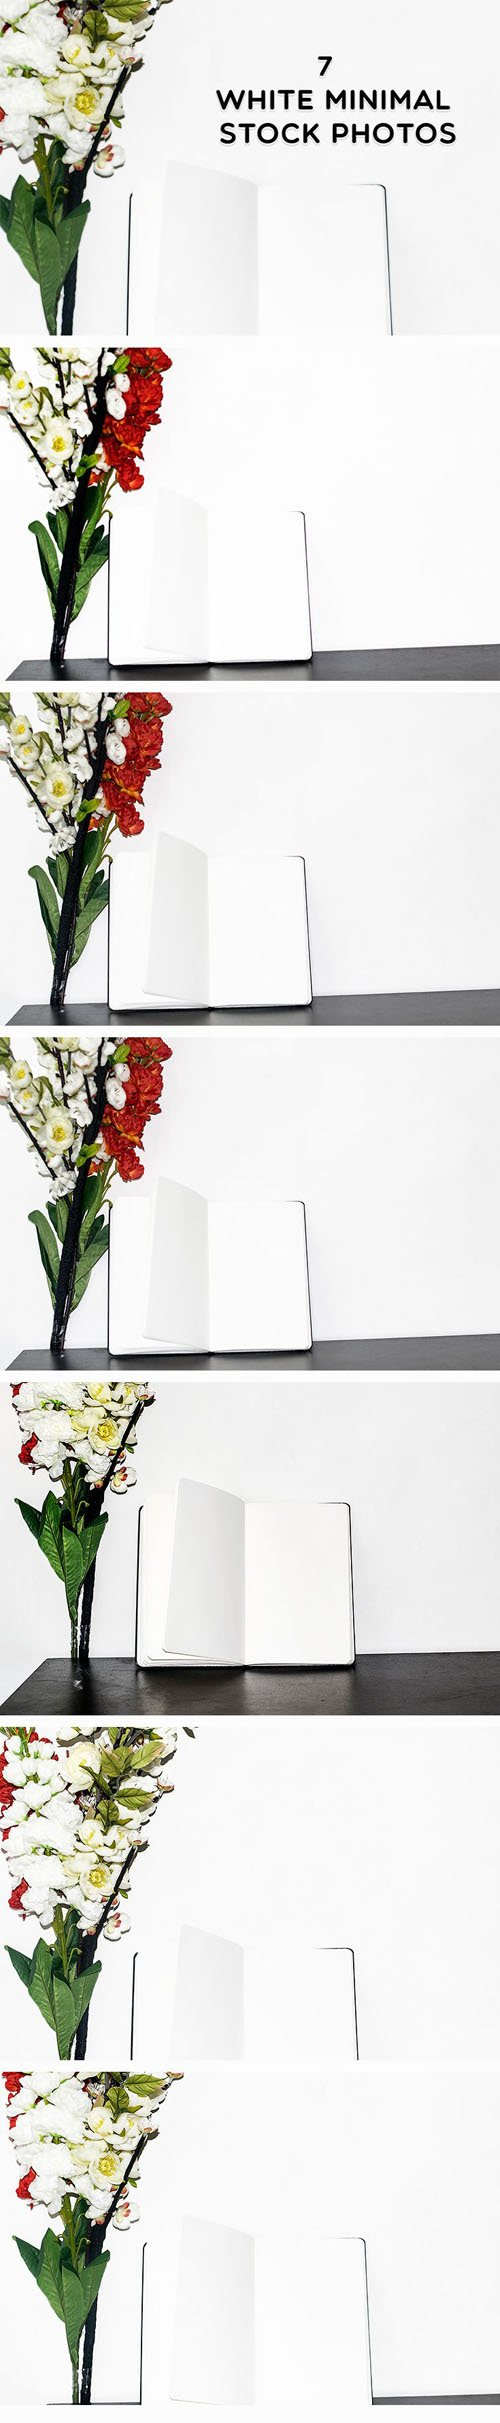 7 White Minimal Floral Stock Photos